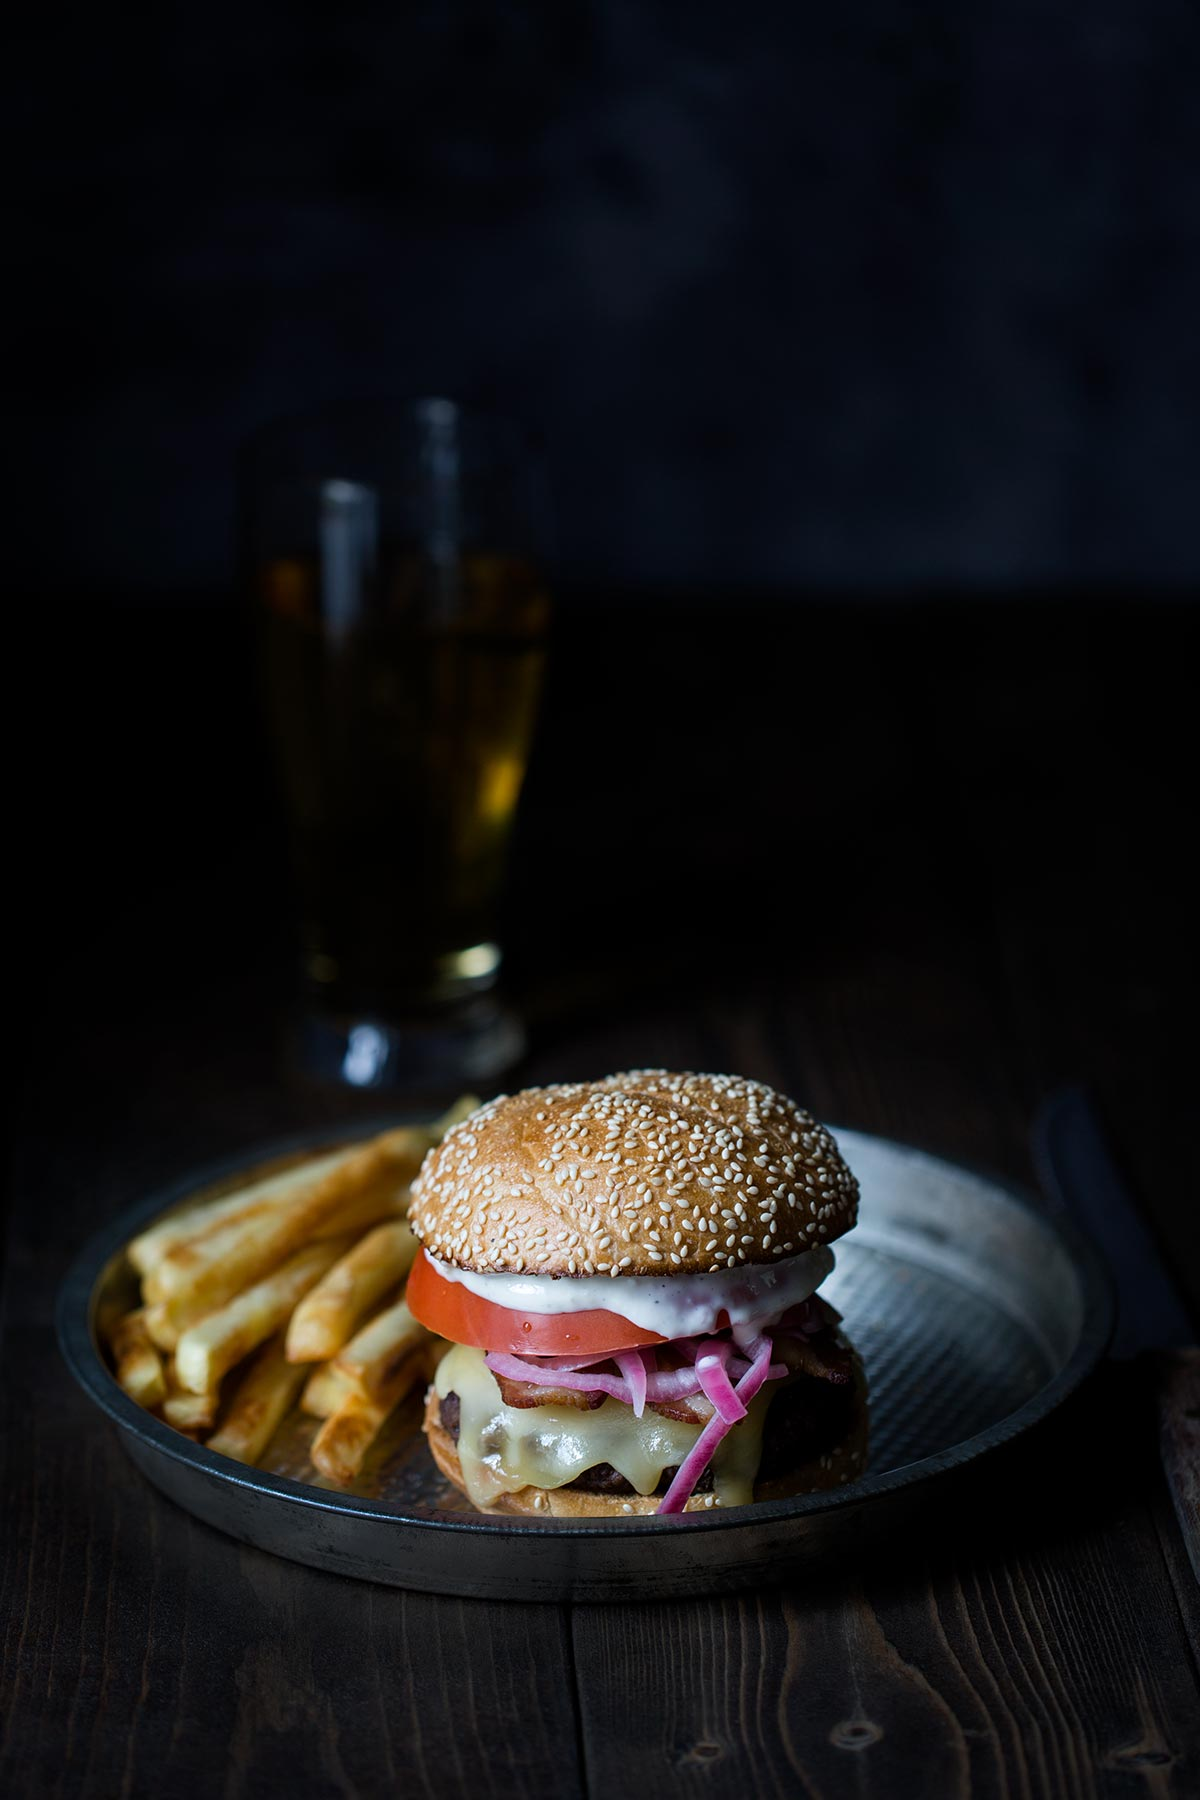 A burger topped with raclette cheese, pickled shallots, tomato, and aioli.